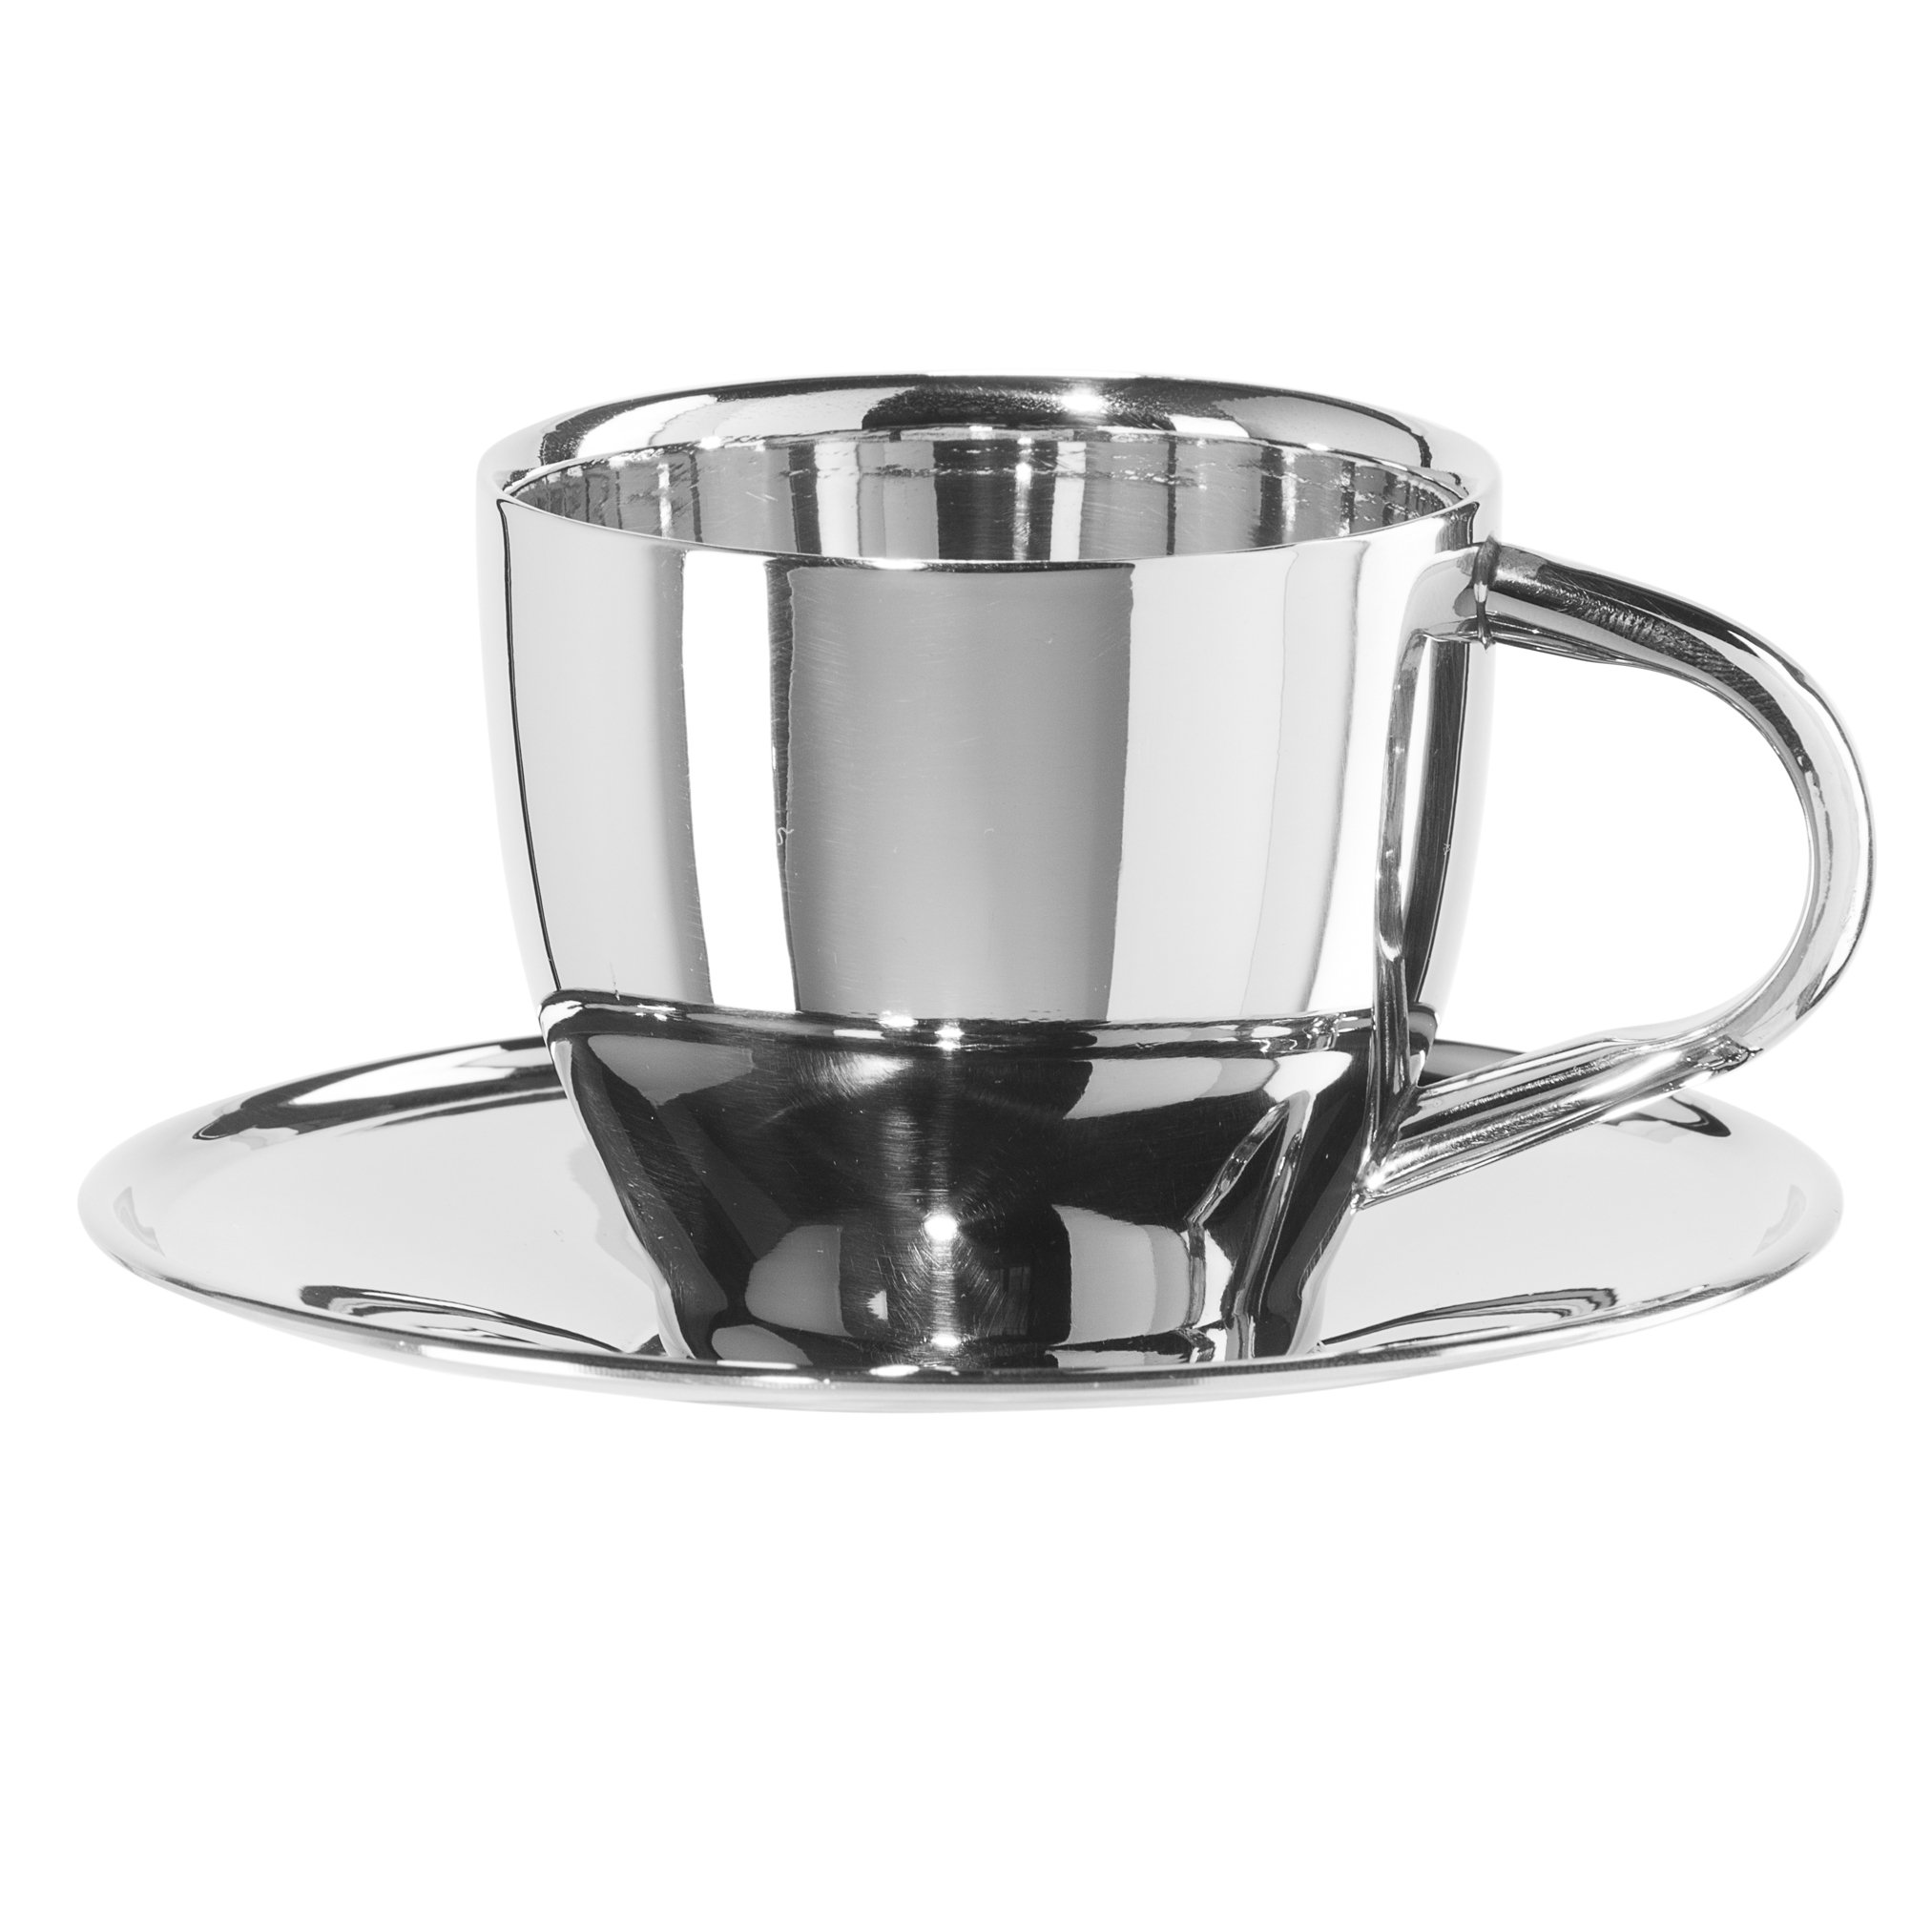 Oggi 6594.0 Coffee Cup & Saucer Double Wall (6 Oz), Stainless